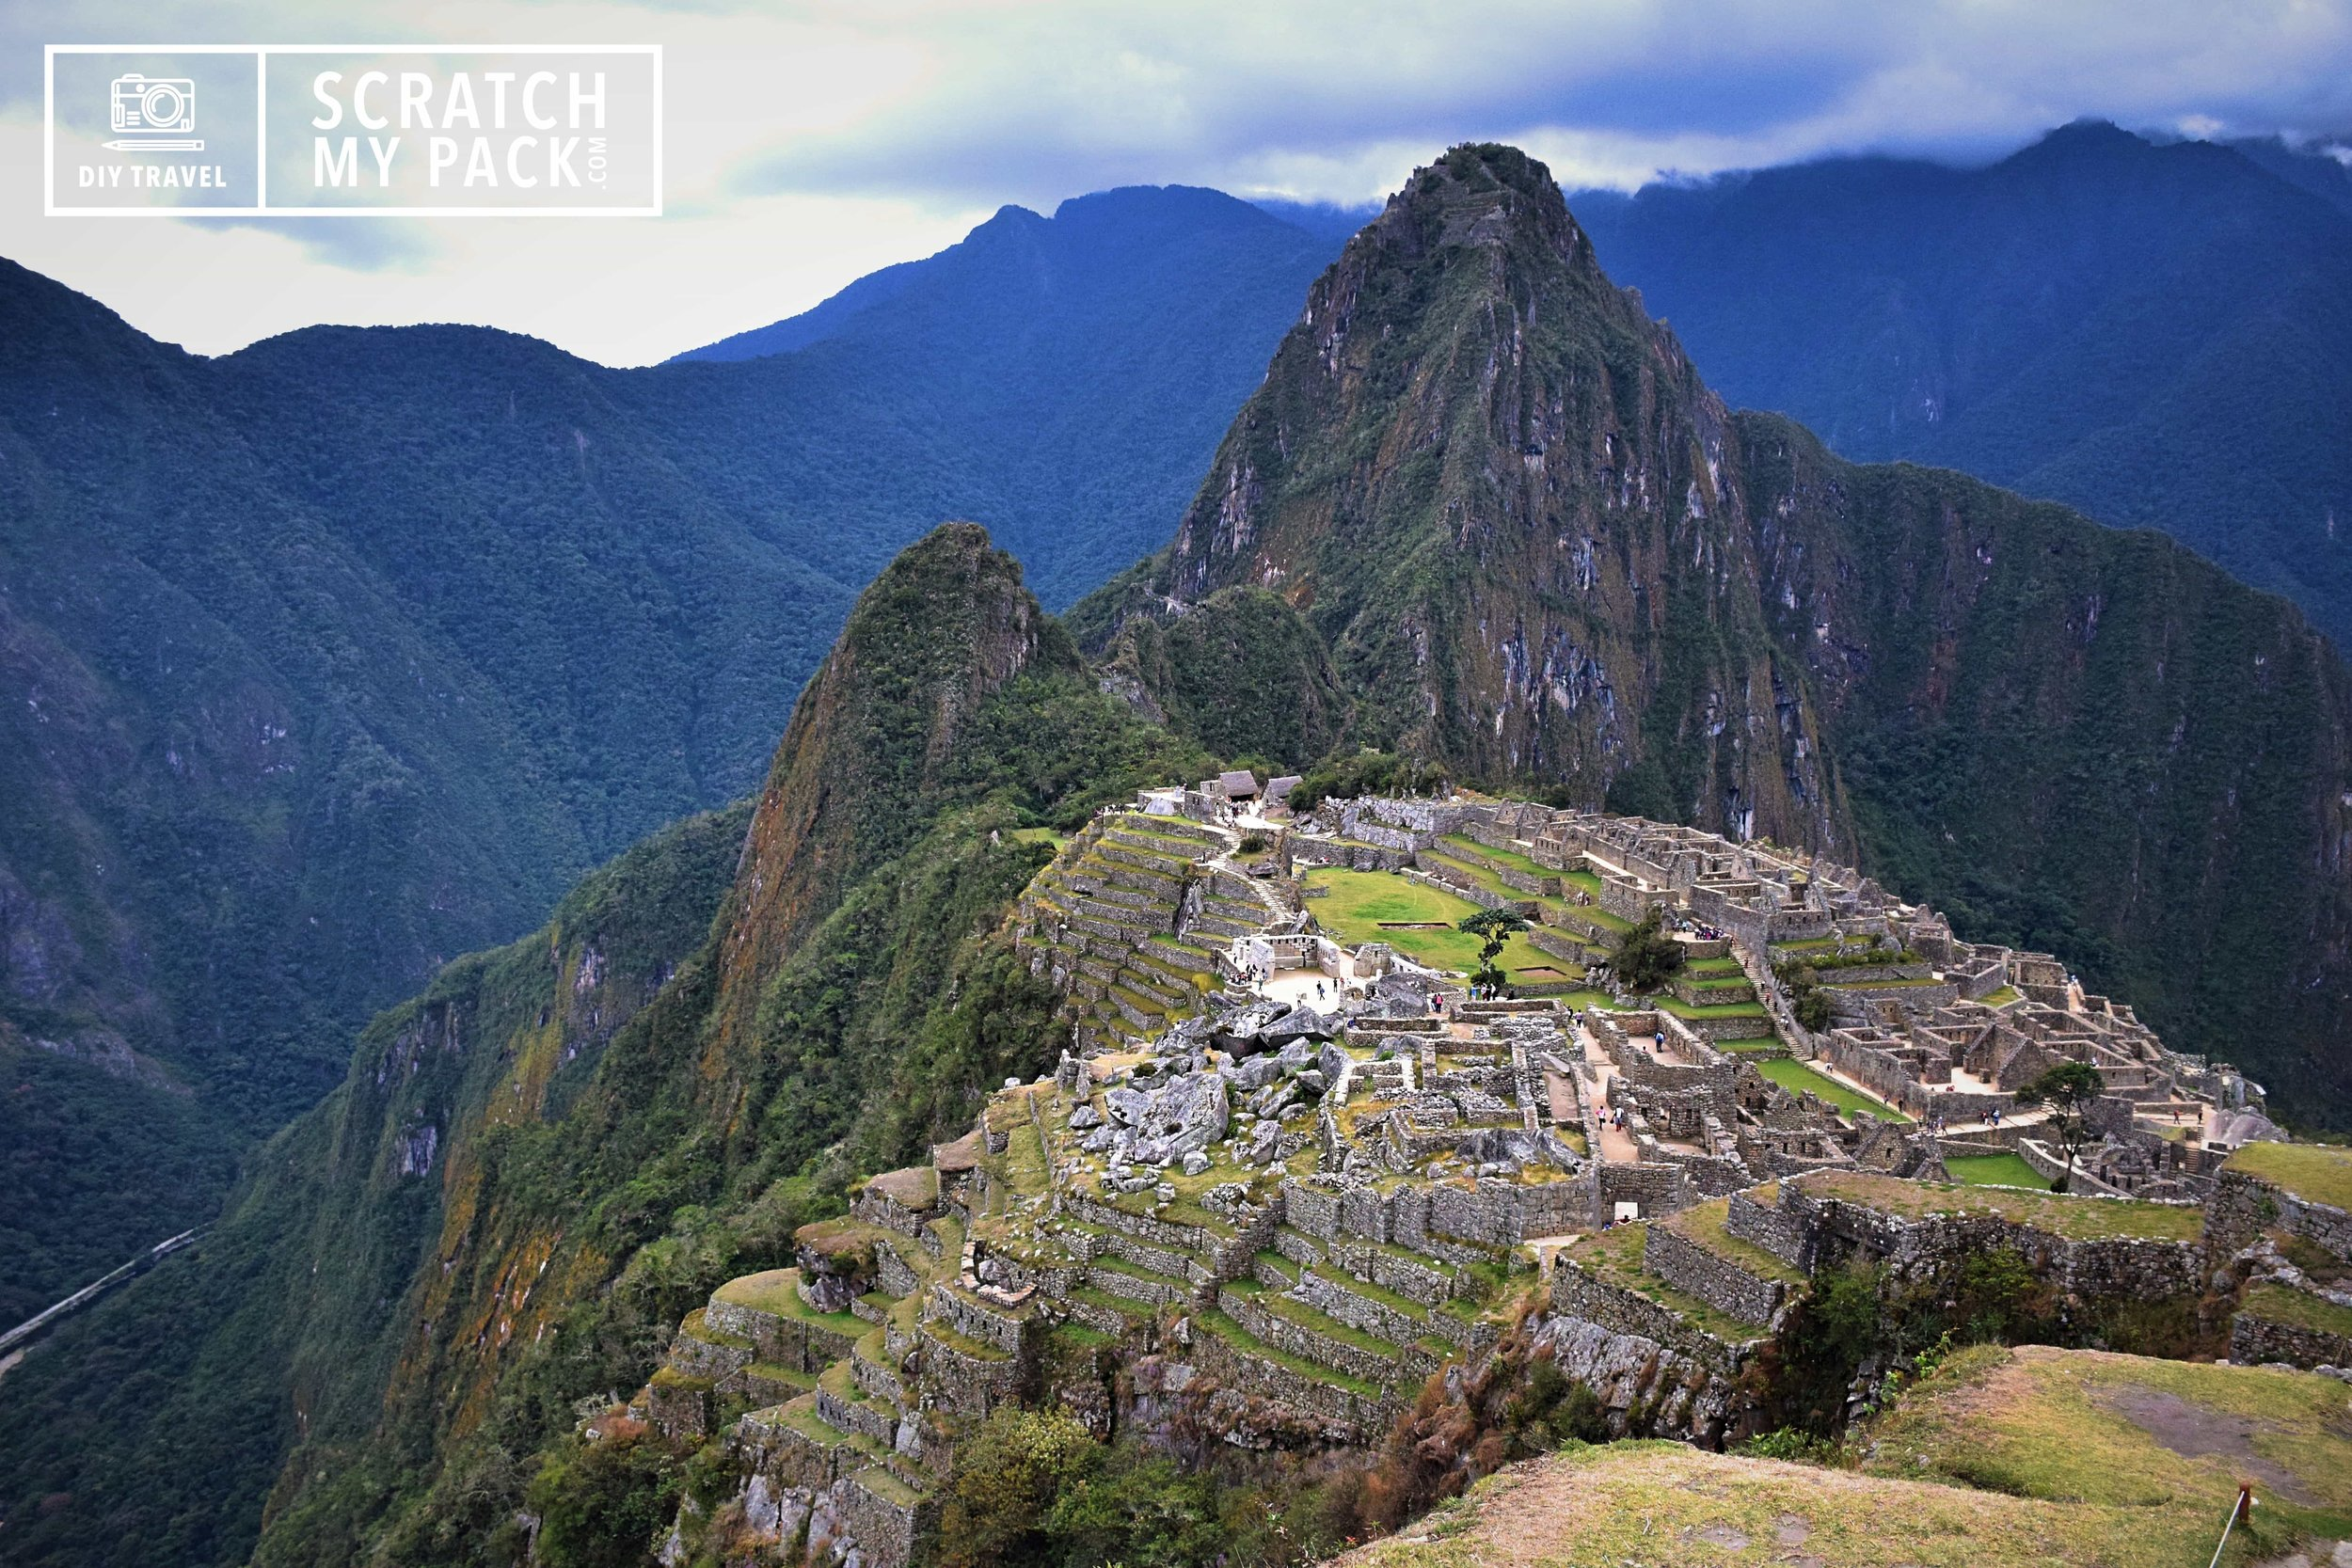 Not in Cusco yet? We can help get you to Peru for super cheap with our flight travel hacks and easy search tips.